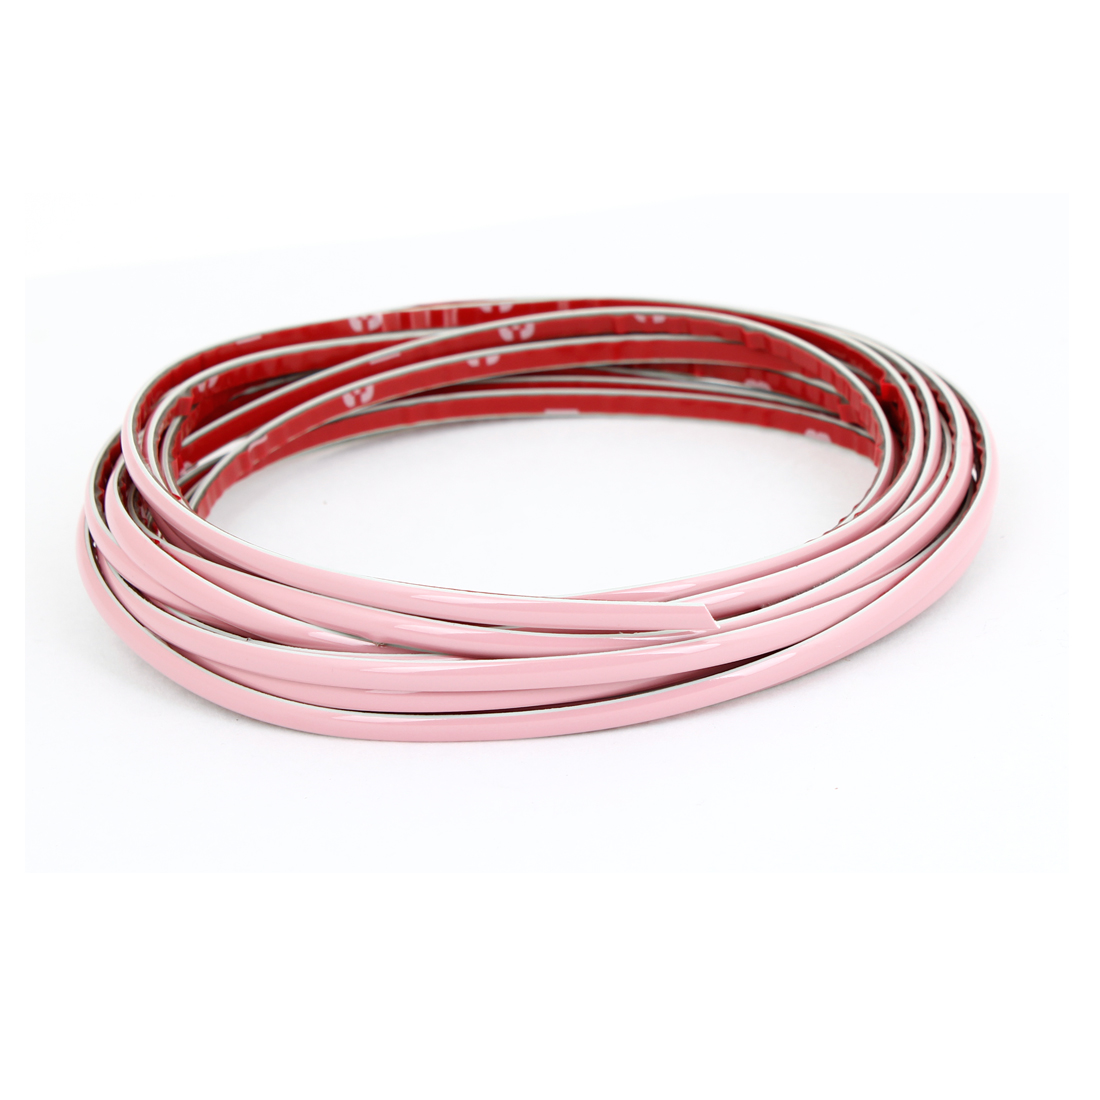 5 Meters Pink Plastic Flexible Moulding Trim Strip Sticker for Car